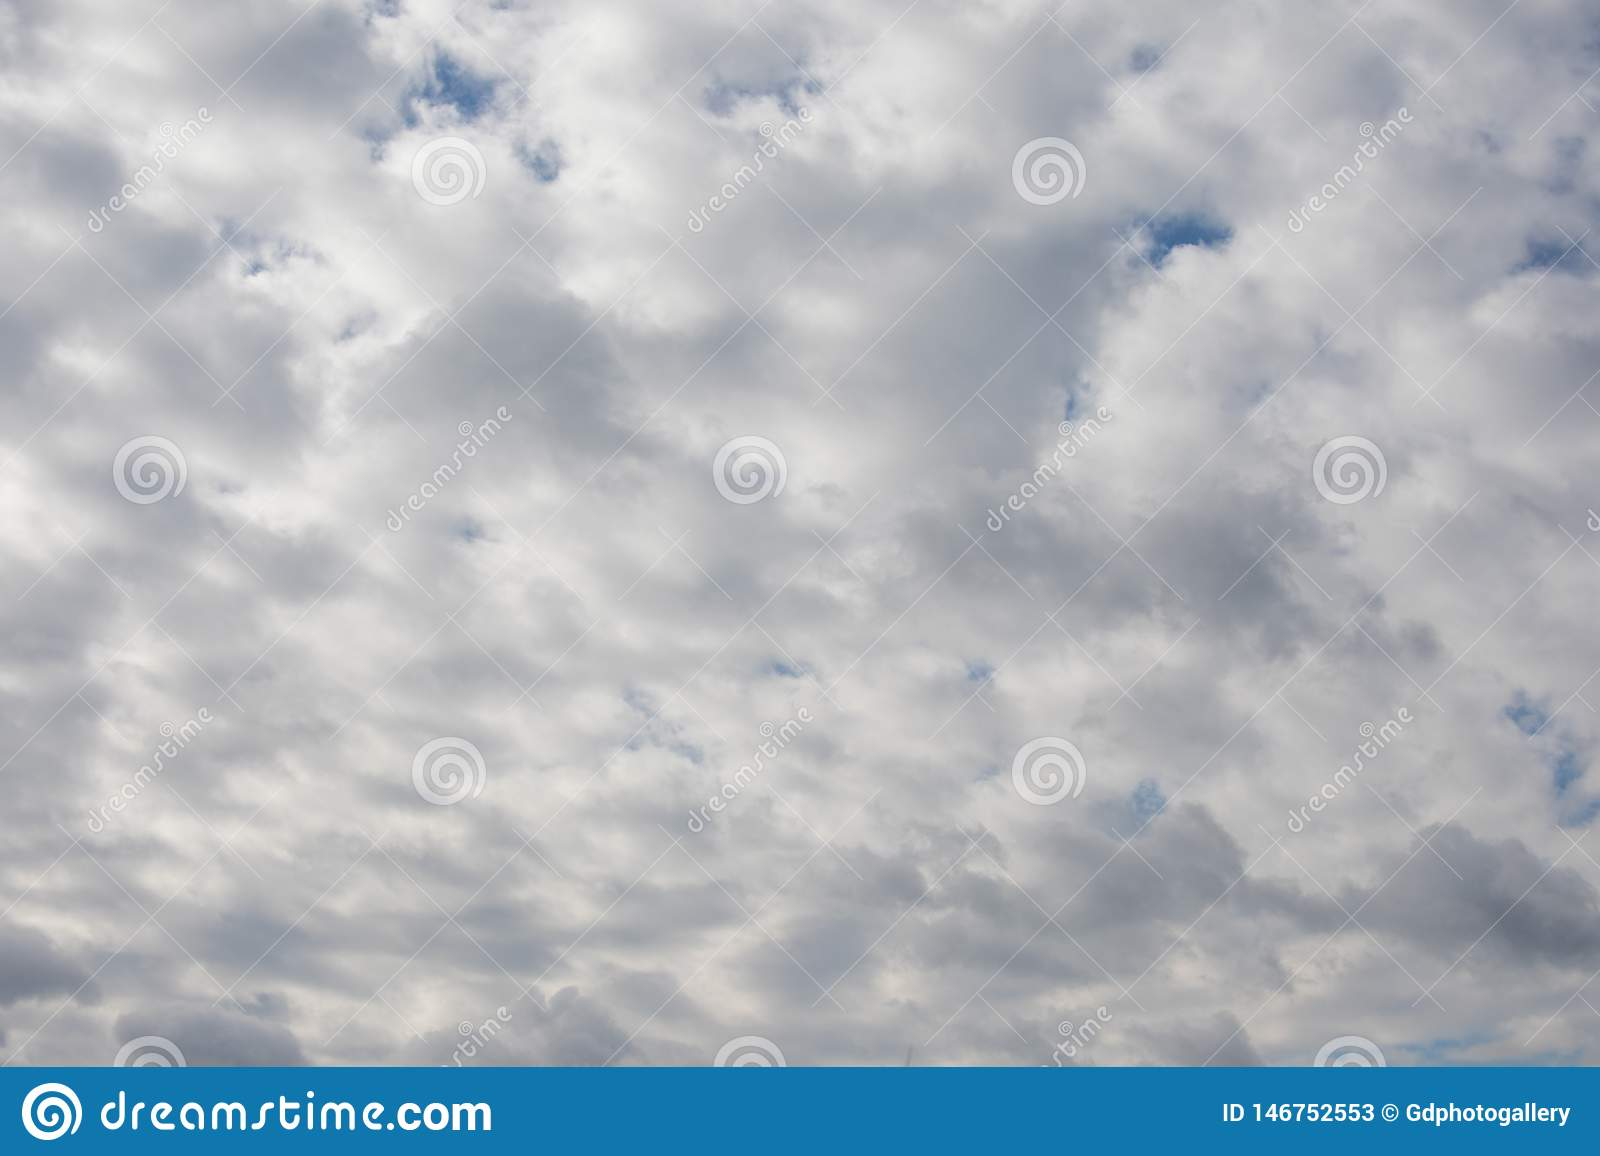 Dramatic cloudy sky, natural photo background